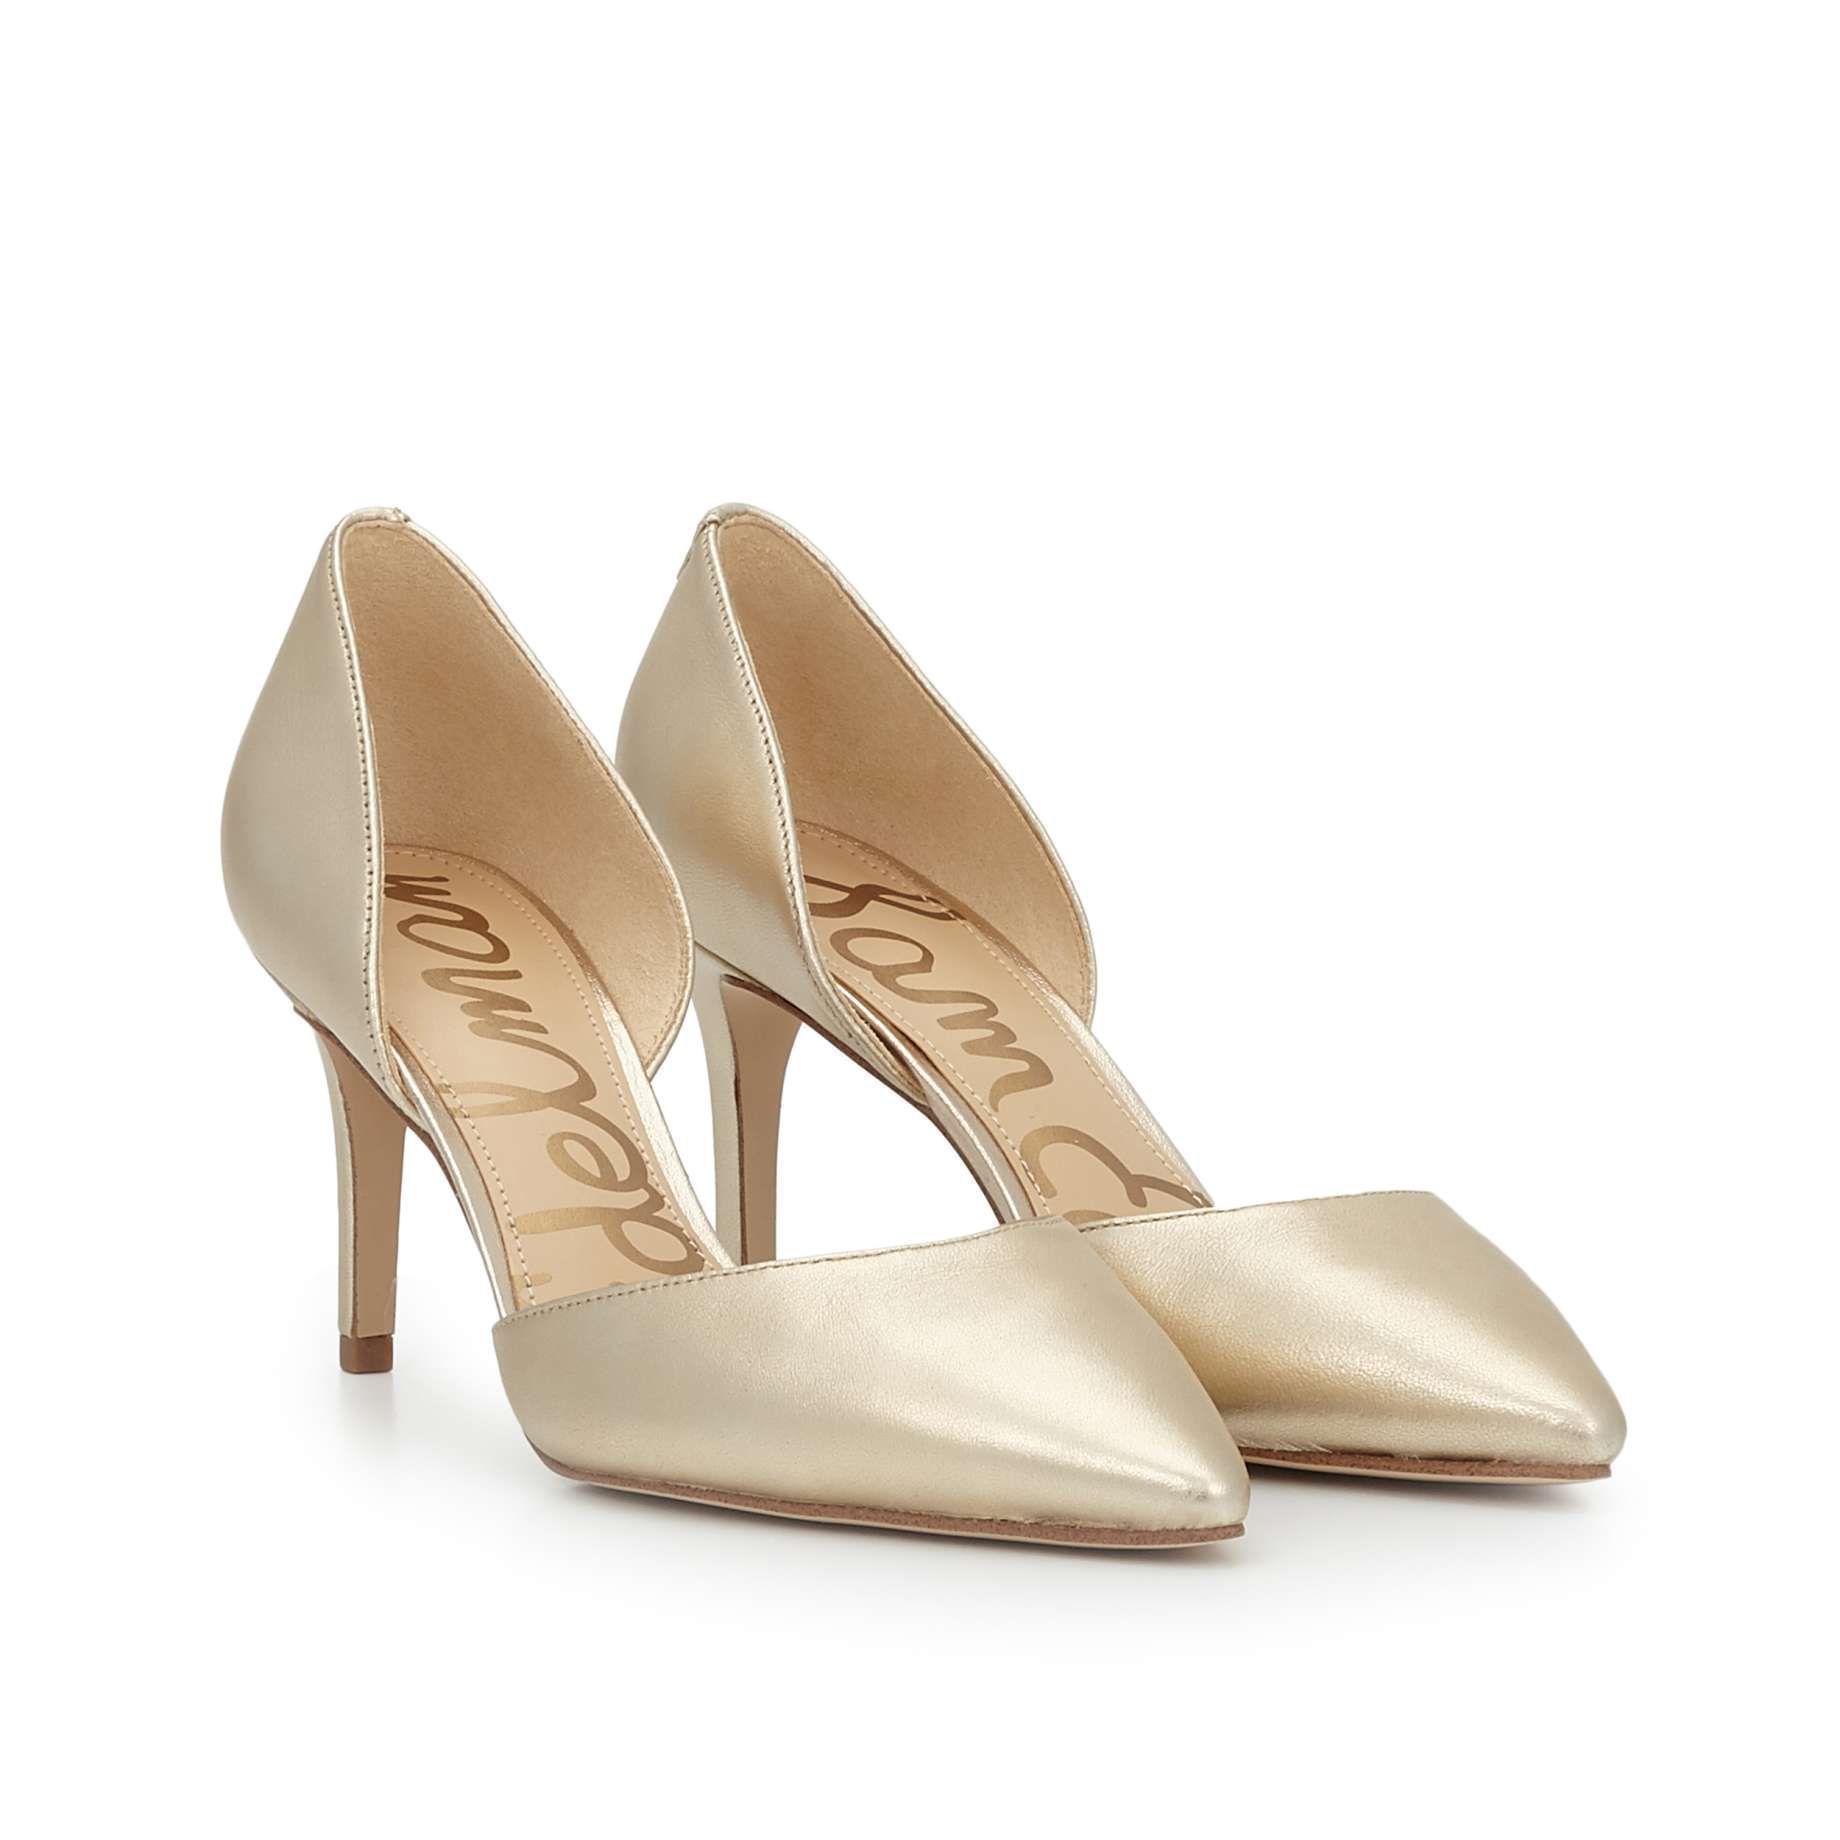 f8f9d95f74a6 Telsa D'Orsay Pump | Wedding Accessories | Fashion, Pumps, Winter ...